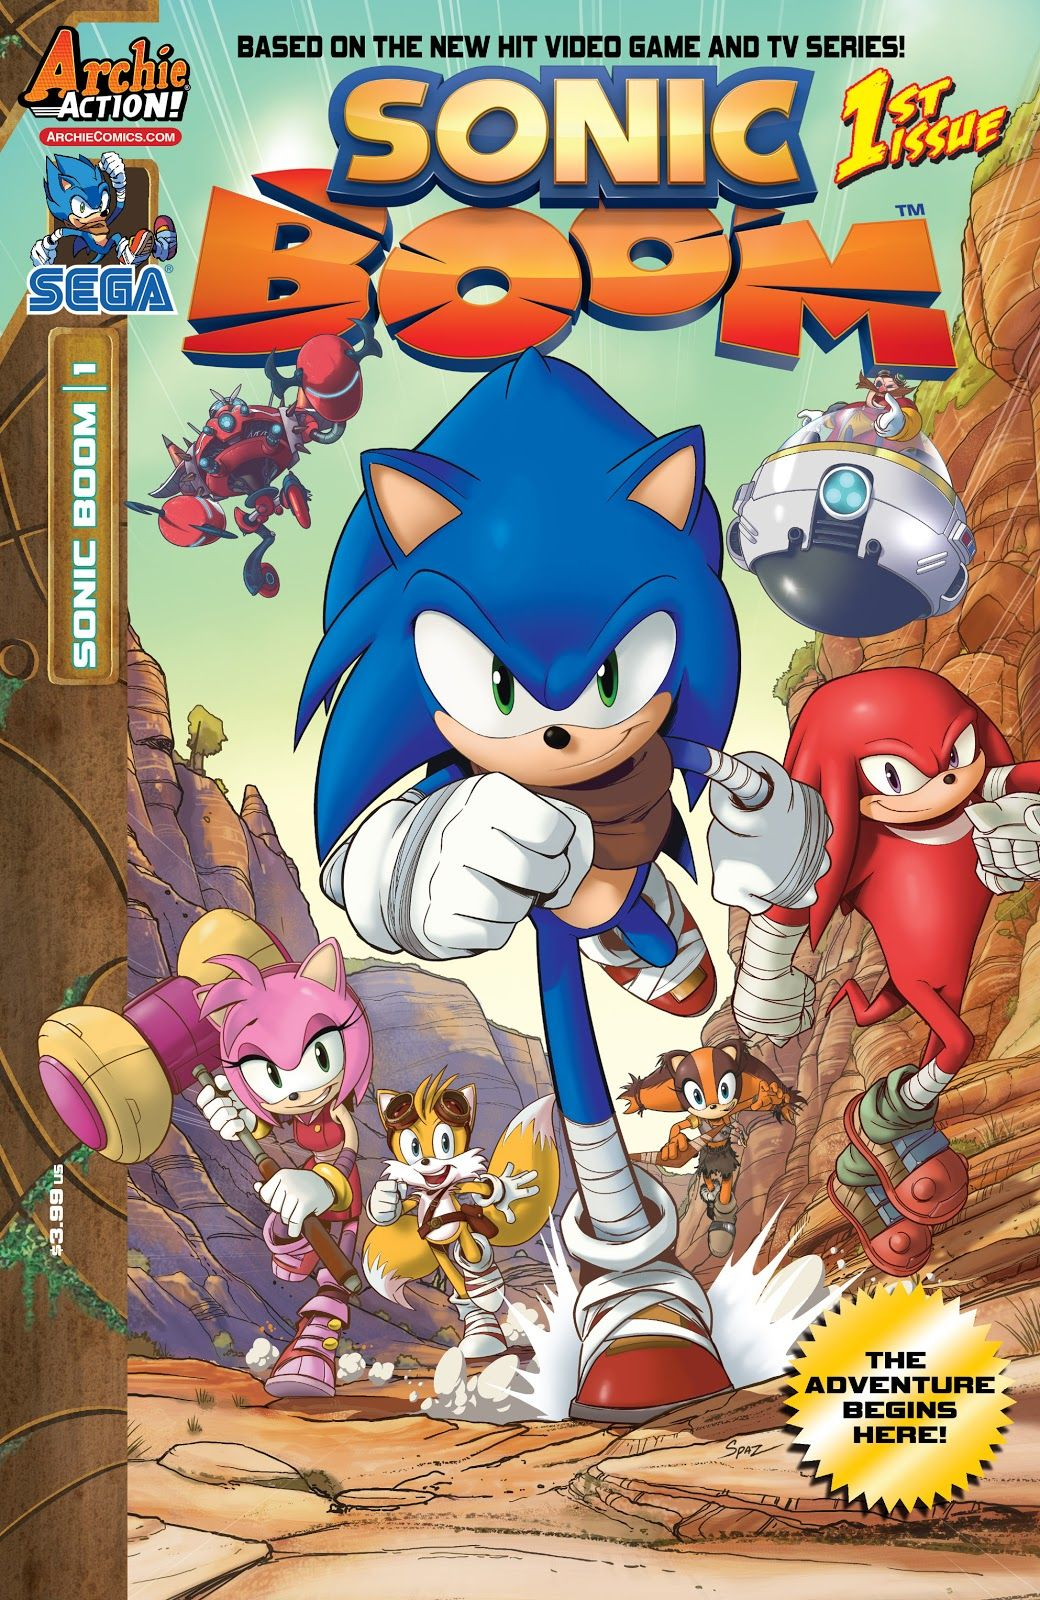 Sonic Boom Issue 1 Read Sonic Boom Issue 1 Comic Online In High Quality In 2020 Sonic Boom Sonic Archie Comics